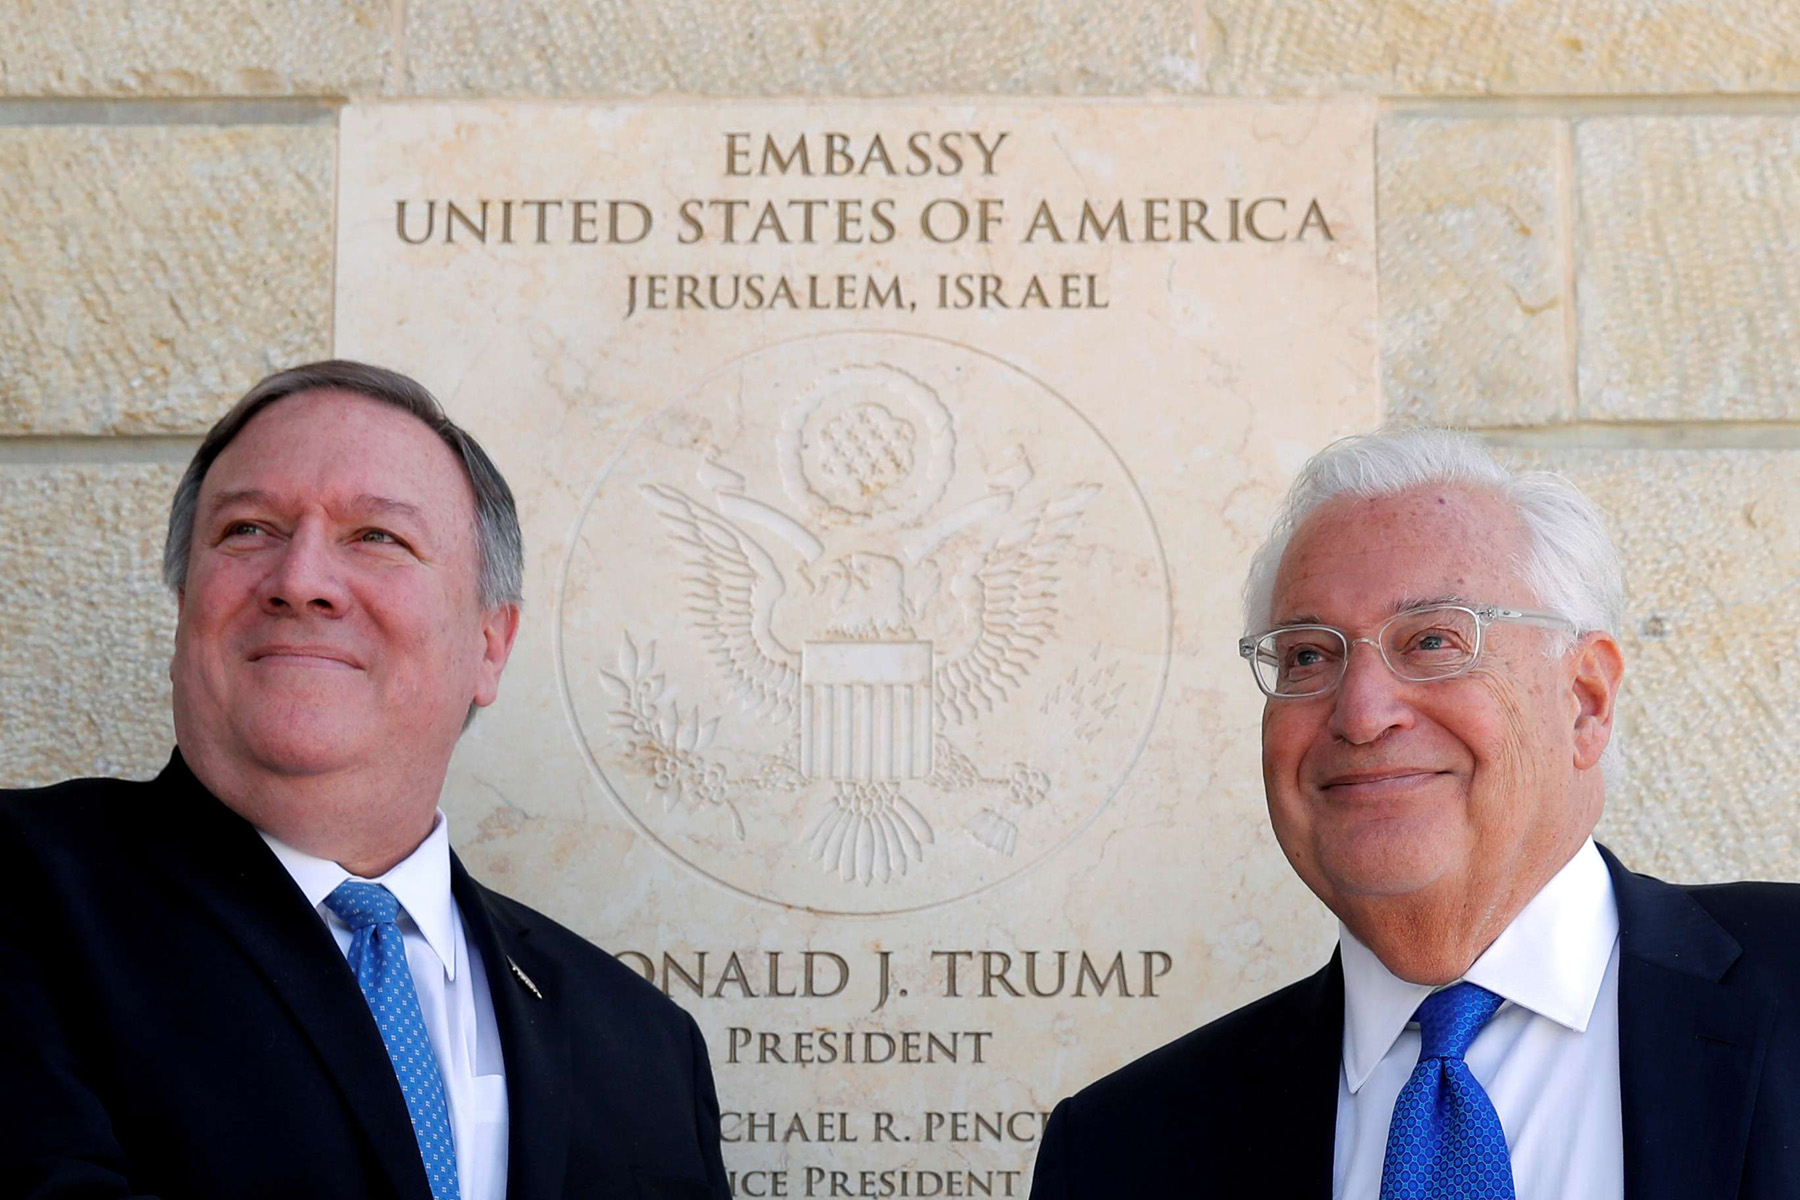 US Secretary of State Mike Pompeo and US Ambassador to Israel David Friedman stand next to the dedication plaque at the US embassy in Jerusalem, on March 21. (Reuters)